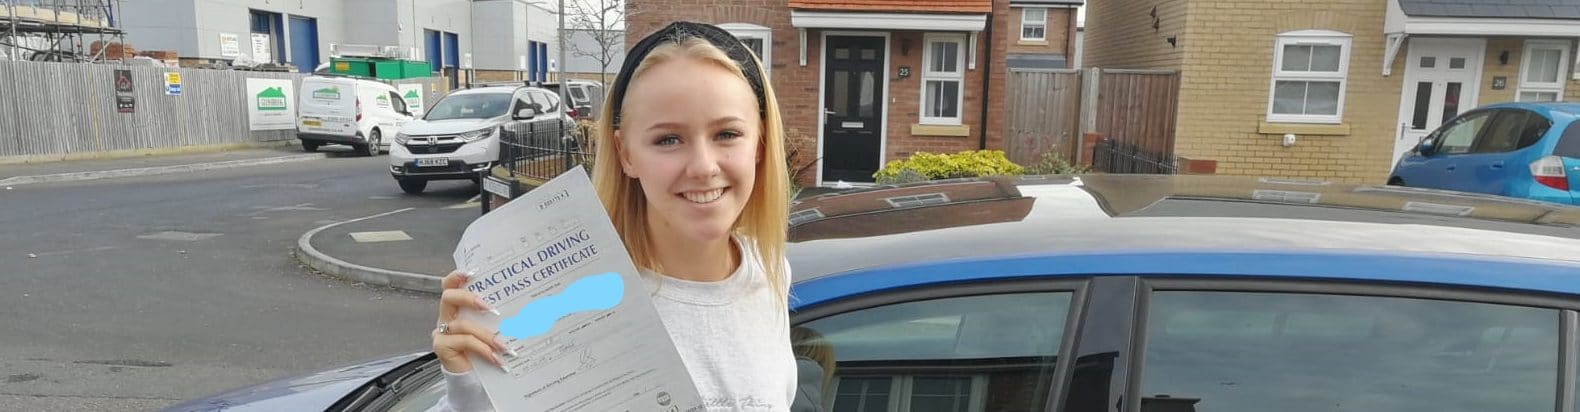 First Time Pass !! Well done to Phoebe in Poole